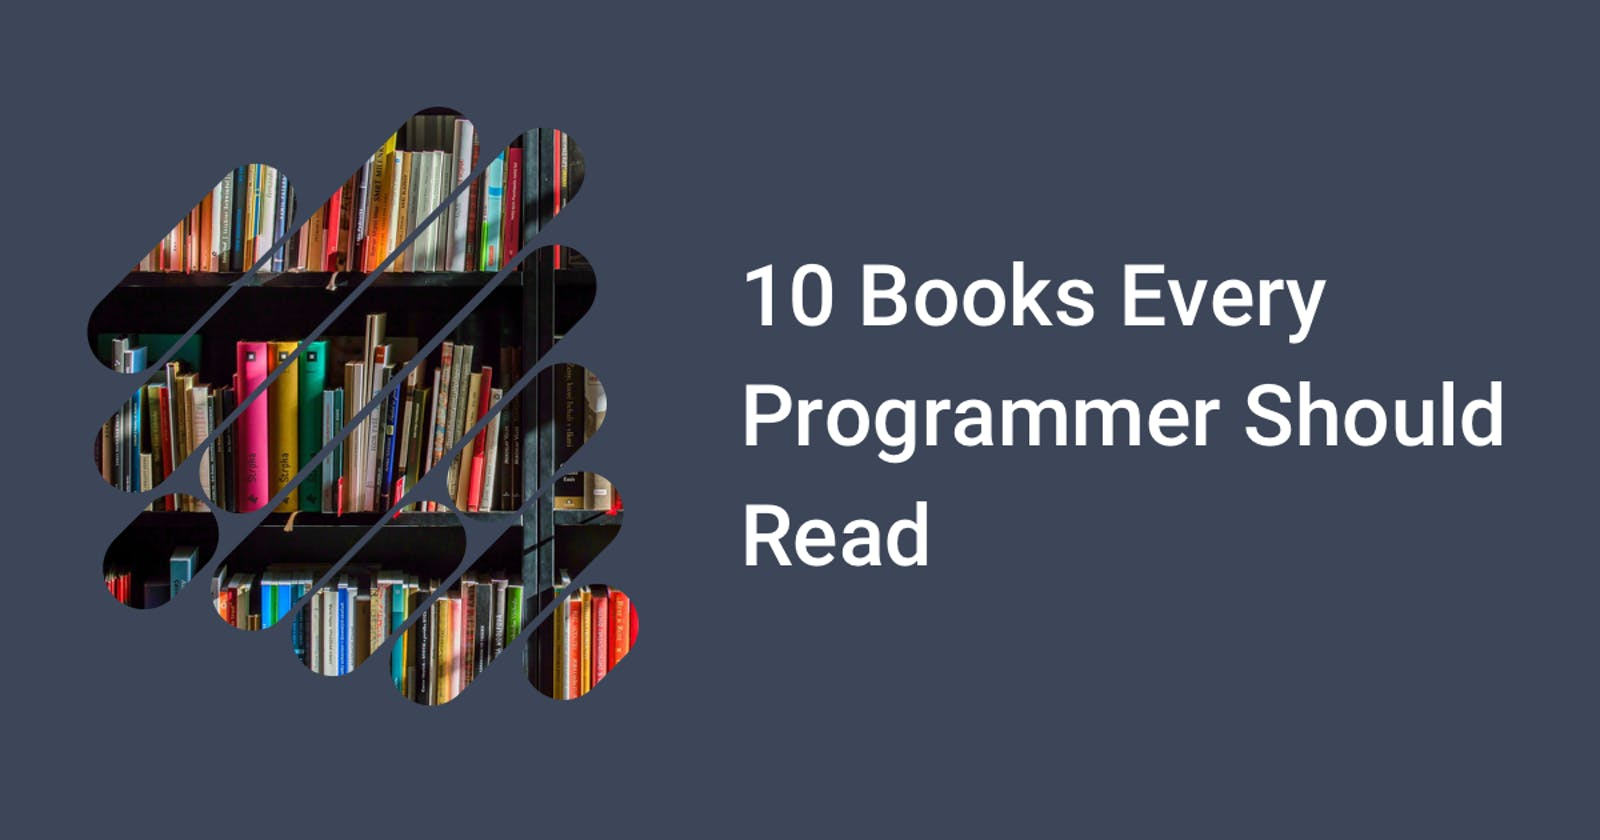 10 Books Every Programmer Should Read